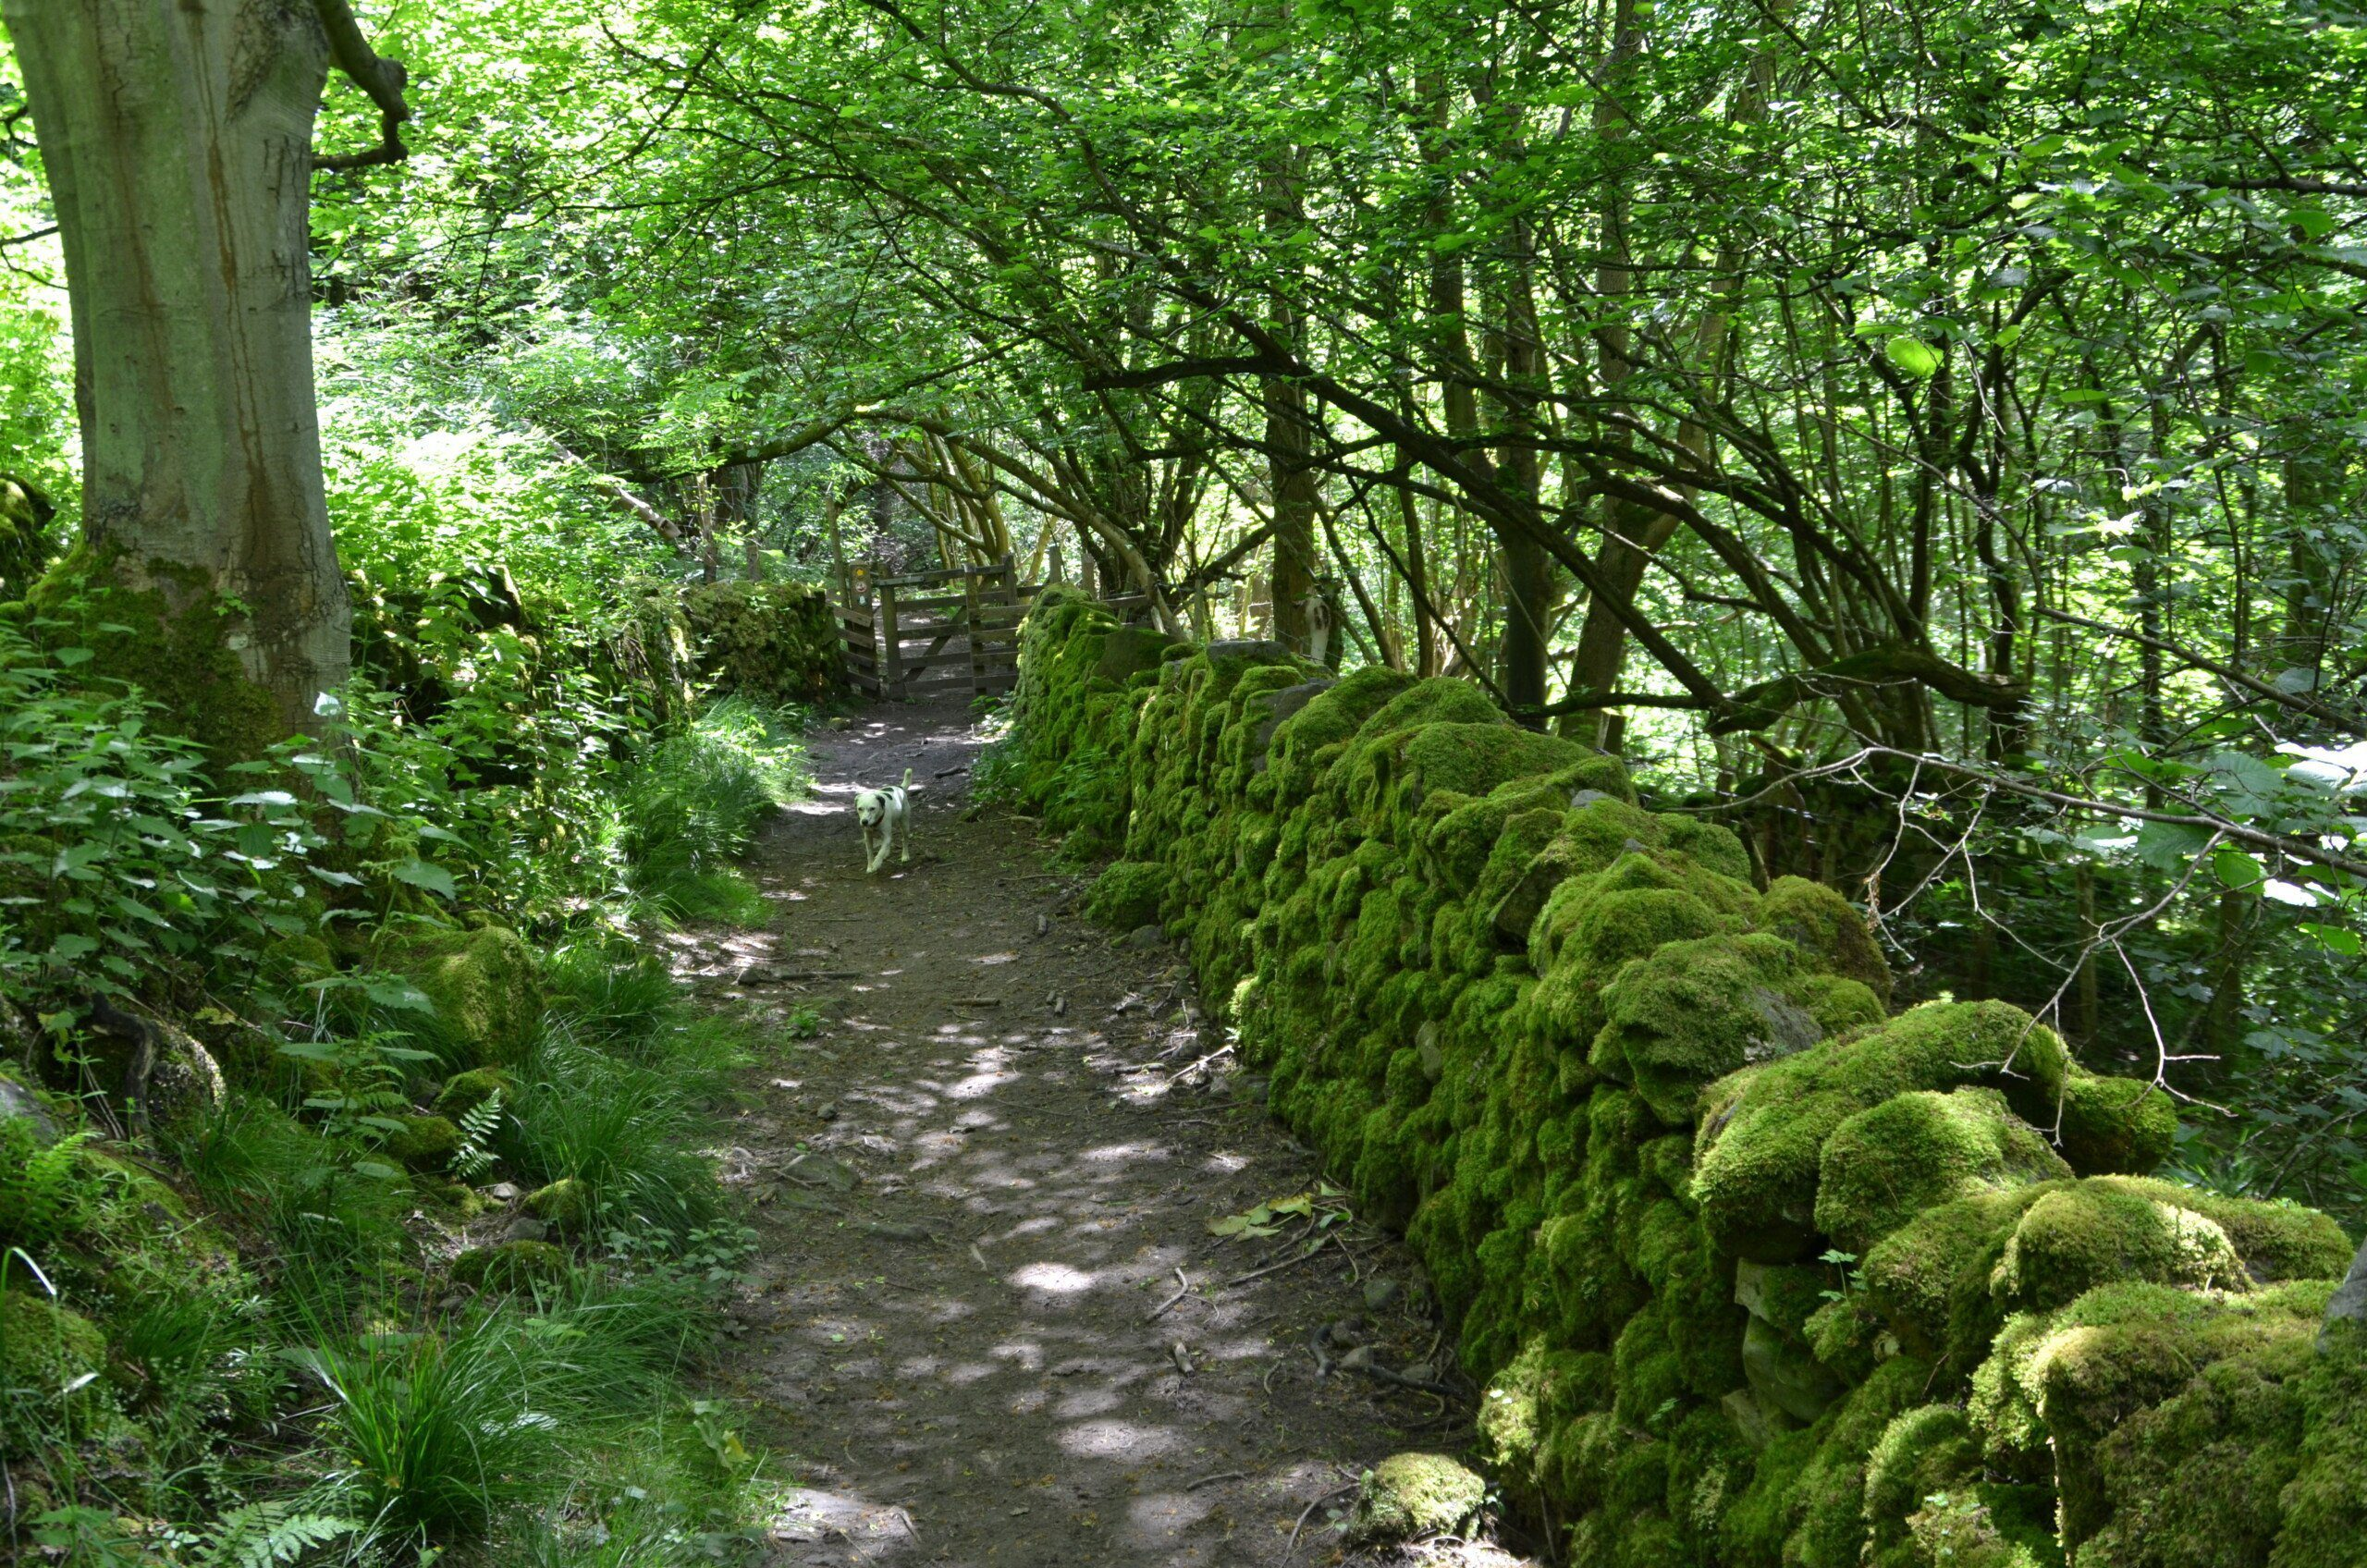 A mossy old wall in the shadow of trees